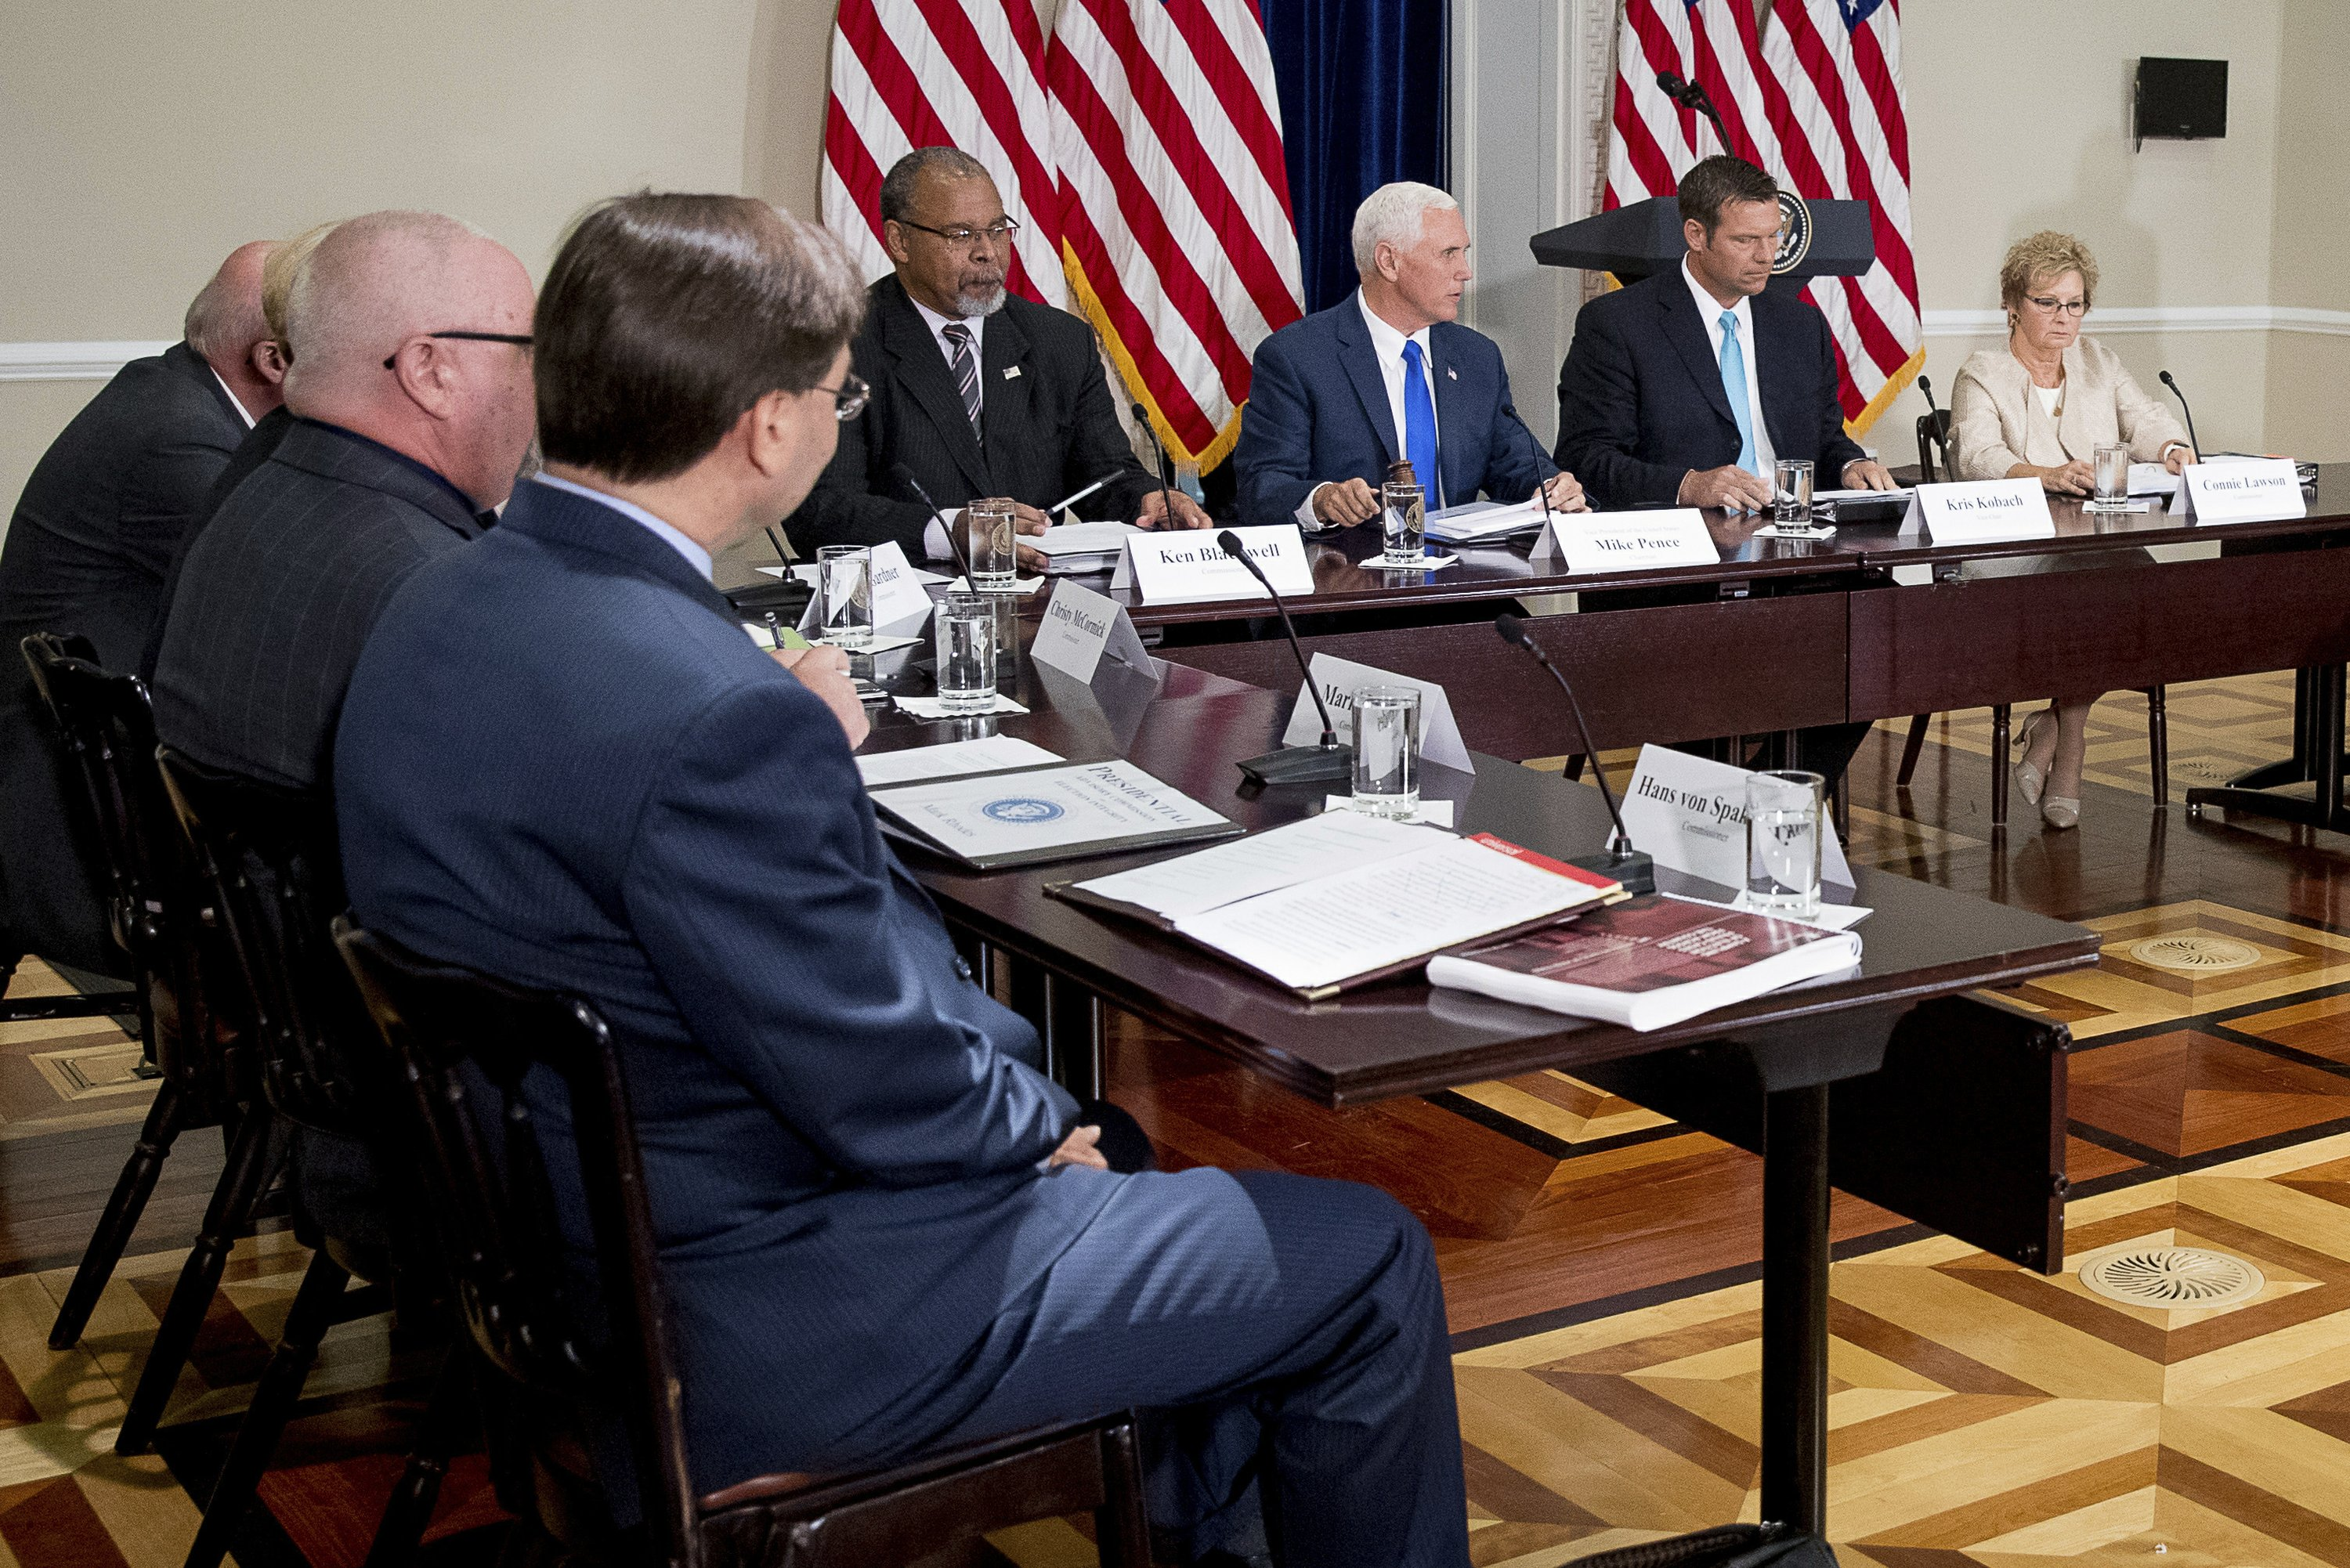 Trump says he wants voter fraud commission to have open mind